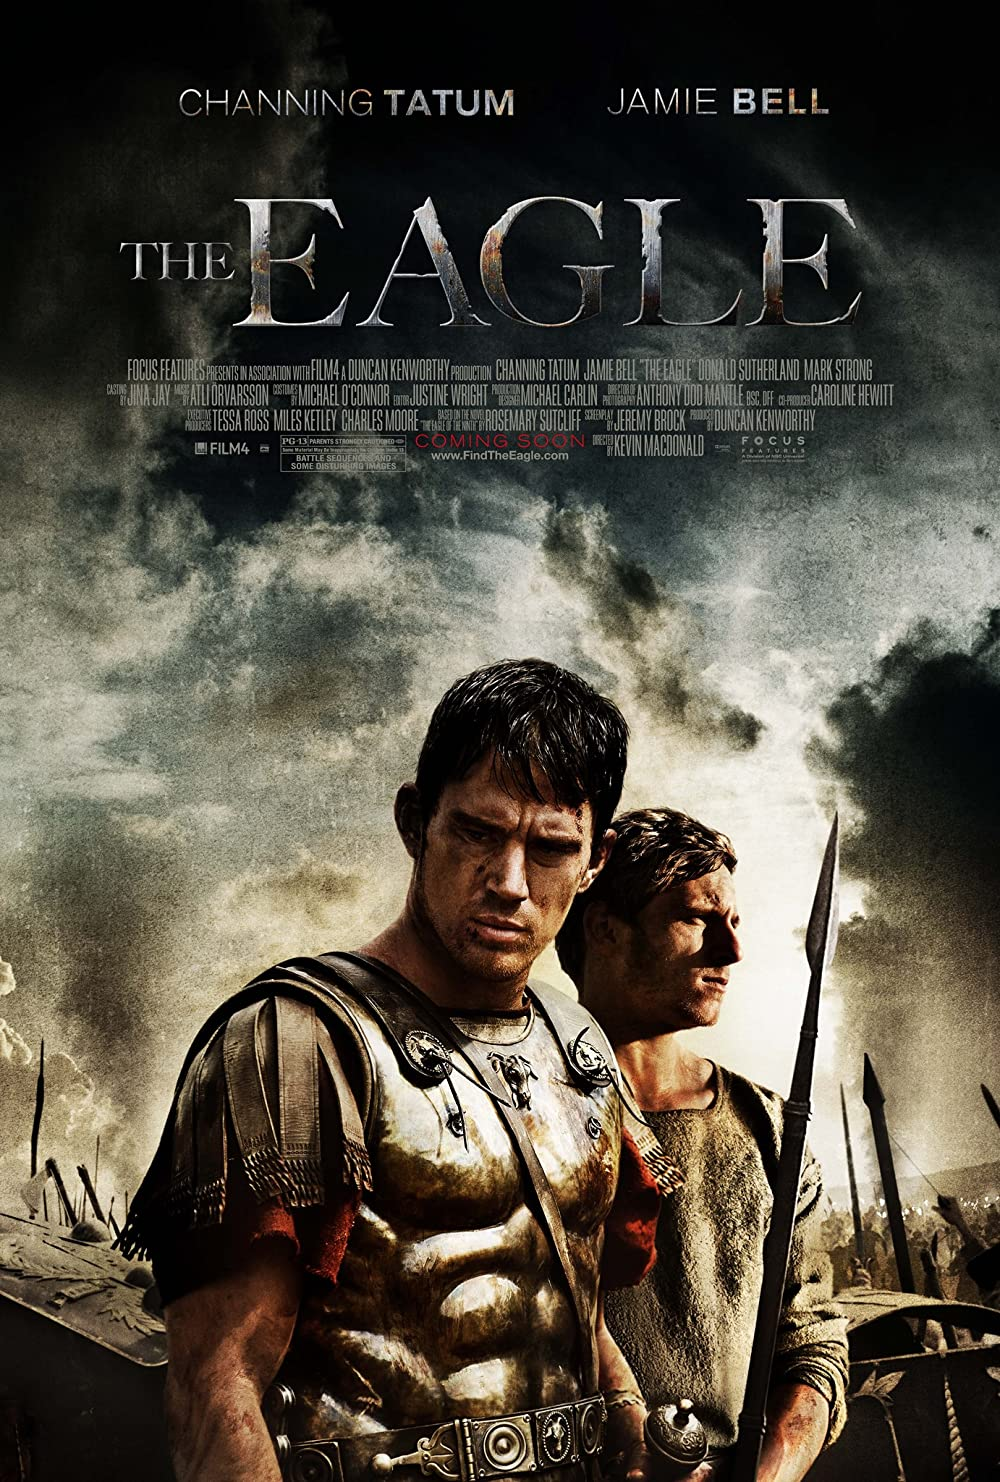 The Eagle 2011 Hindi Dual Audio 480p BluRay ESubs 400MB x264 AAC